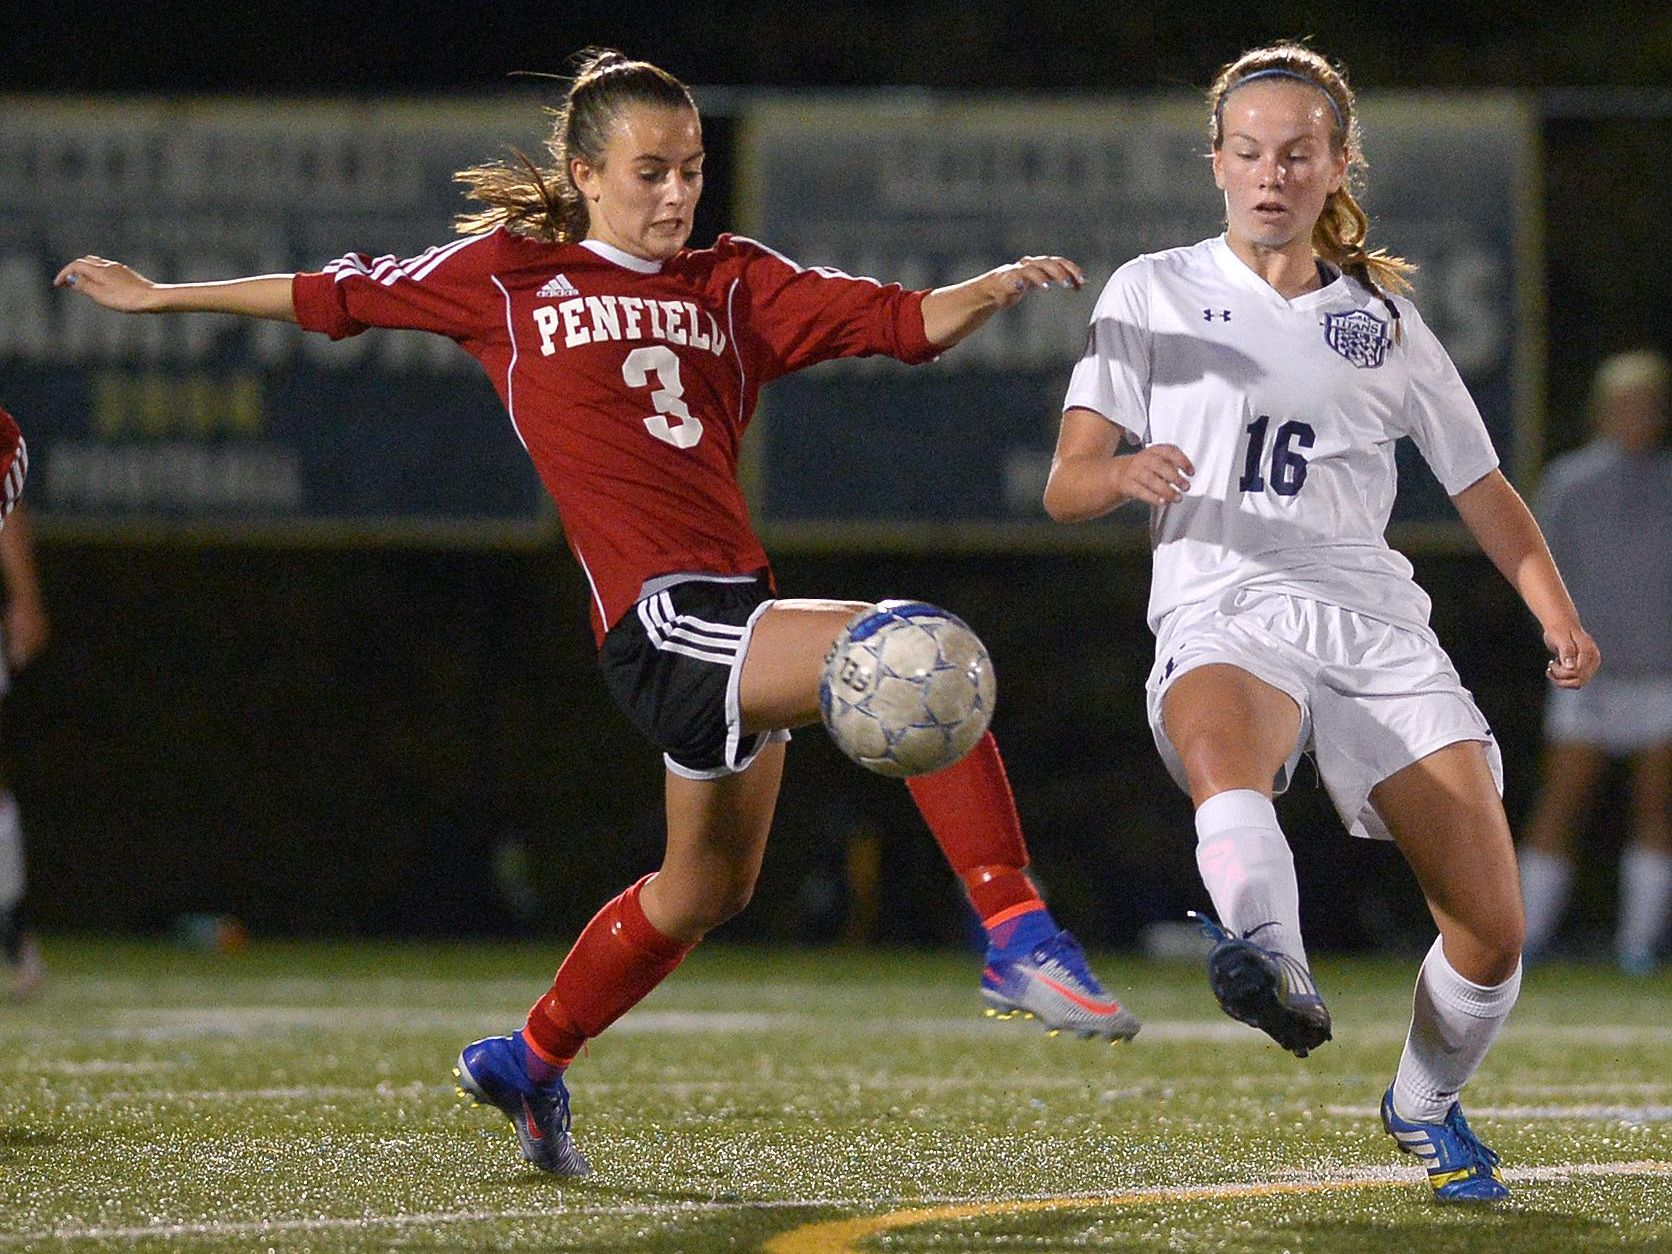 Webster Thomas' Sarah Riedel, right, clears the ball past Penfield's Grace Murphy.